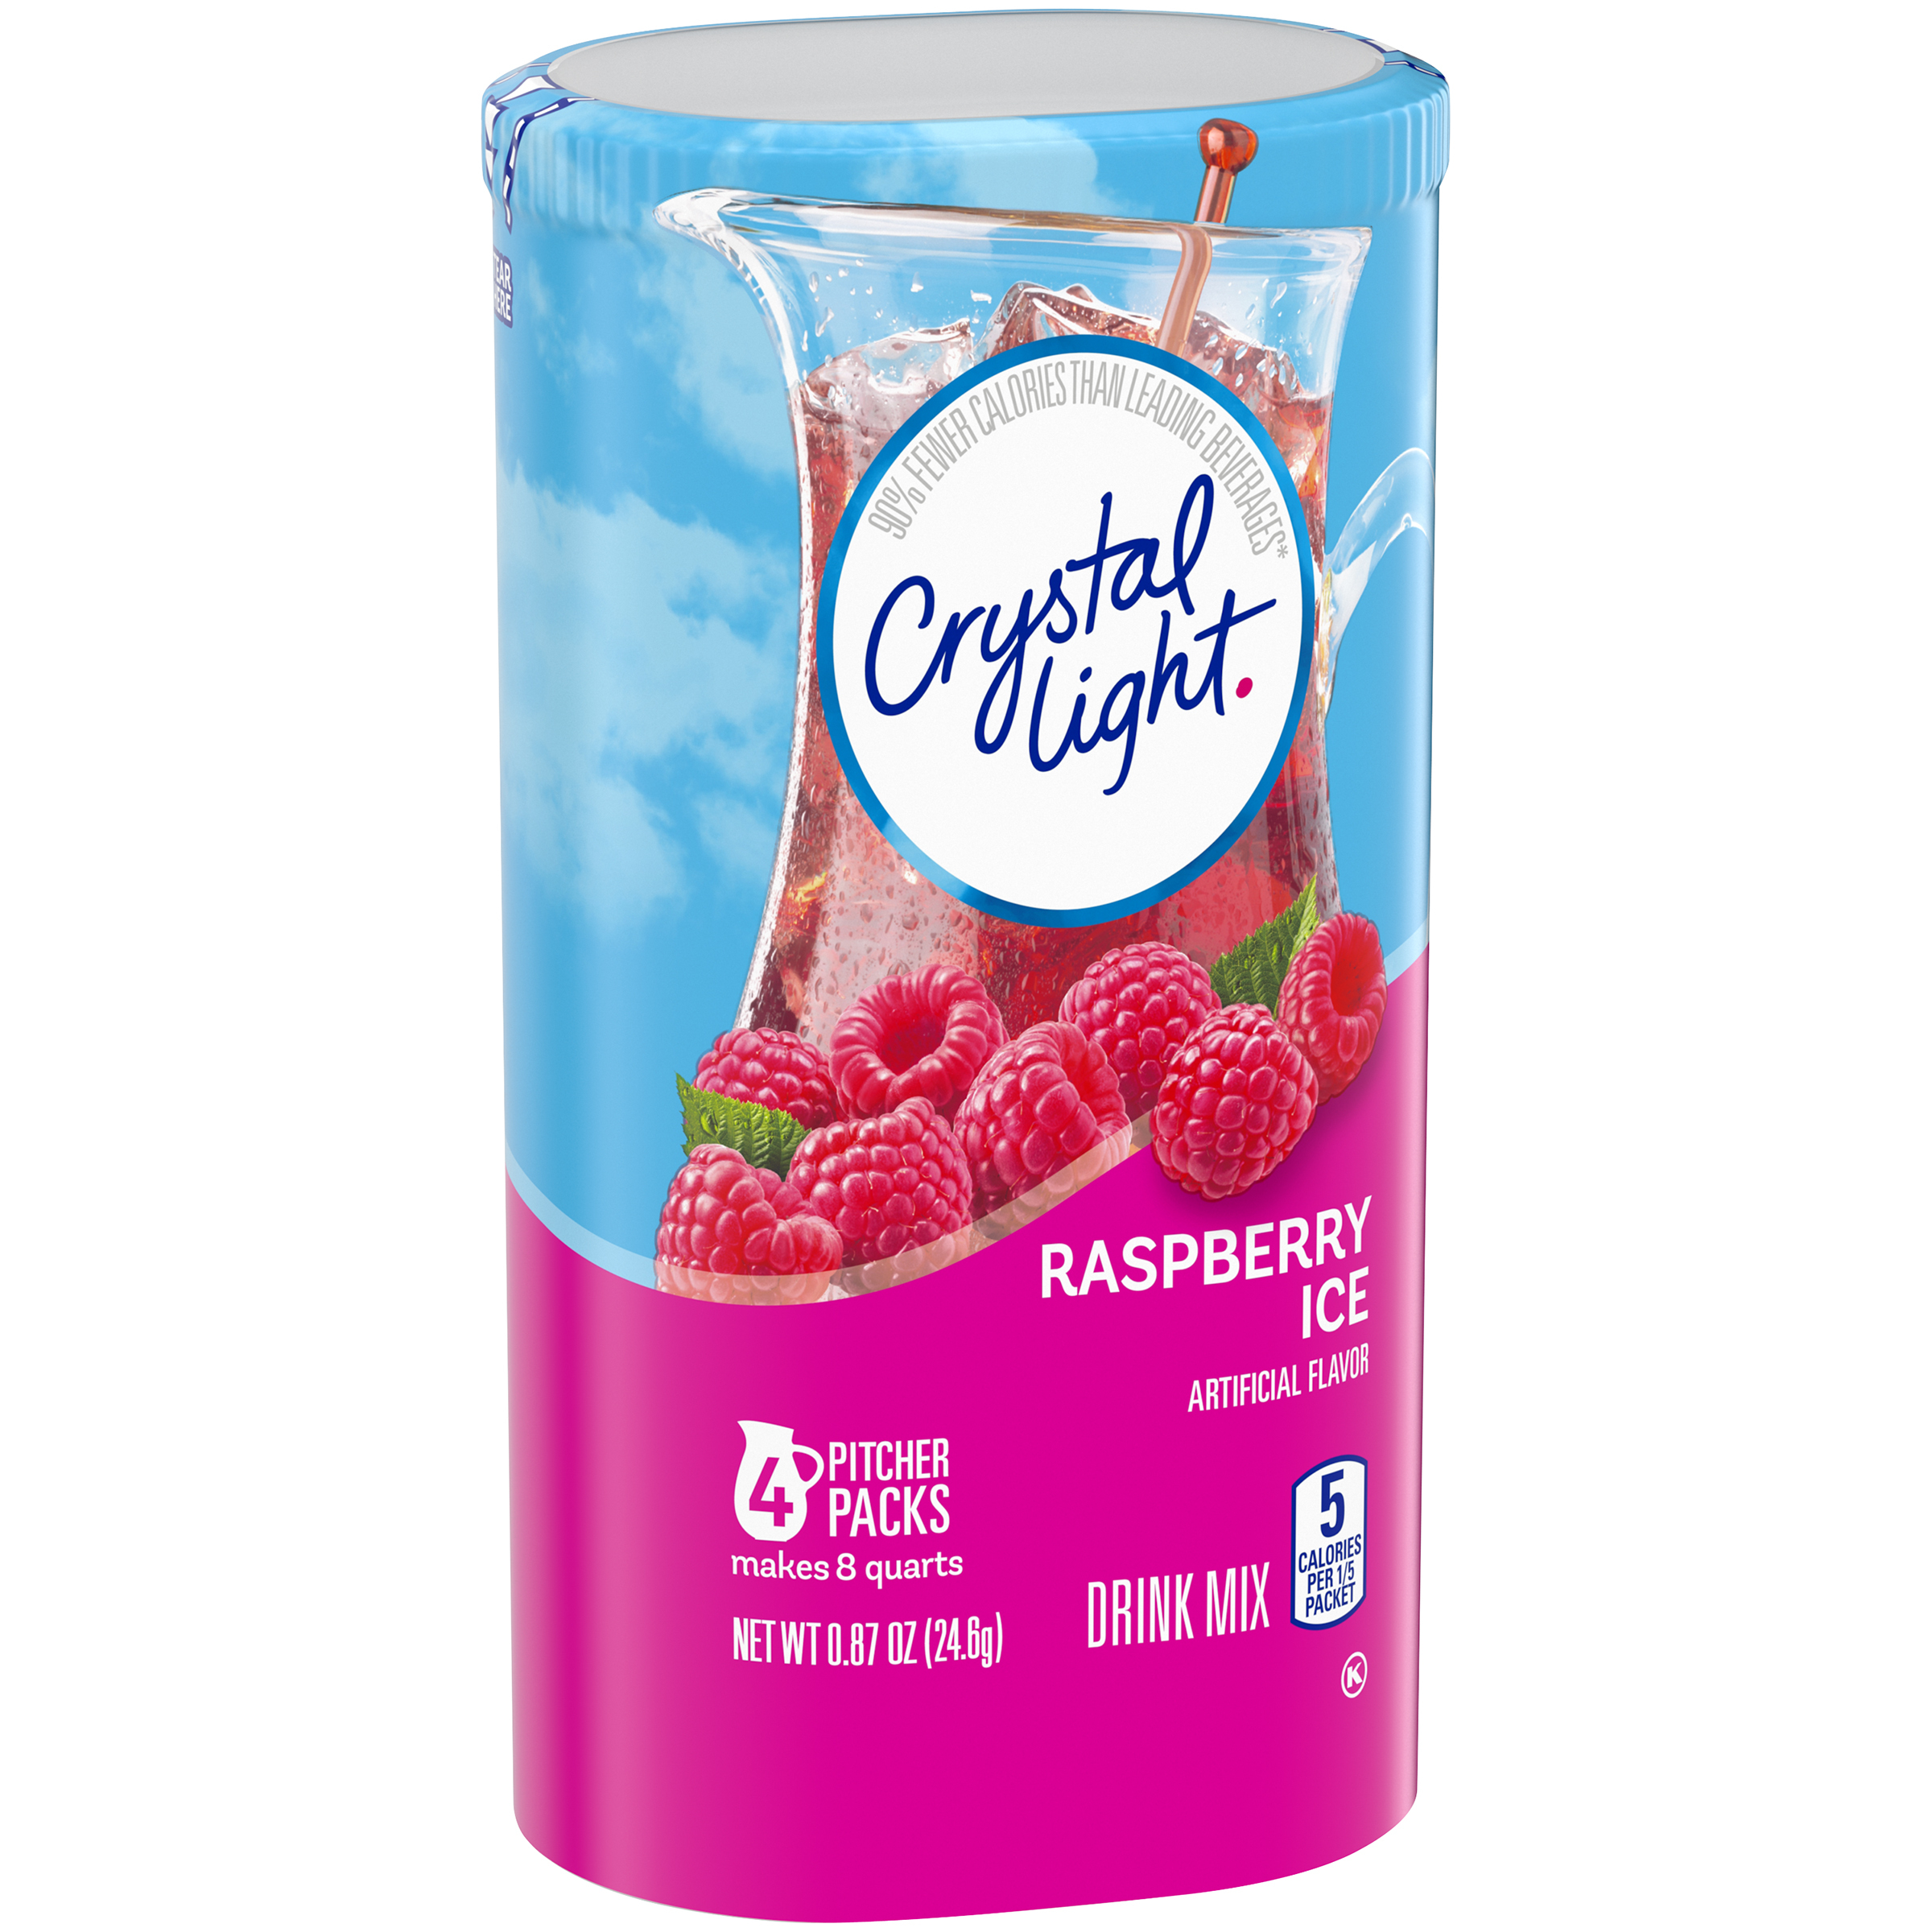 Crystal Light Sugar-Free Raspberry Ice Drink Mix, 4 Pitcher Packets, 0.87 oz Canister